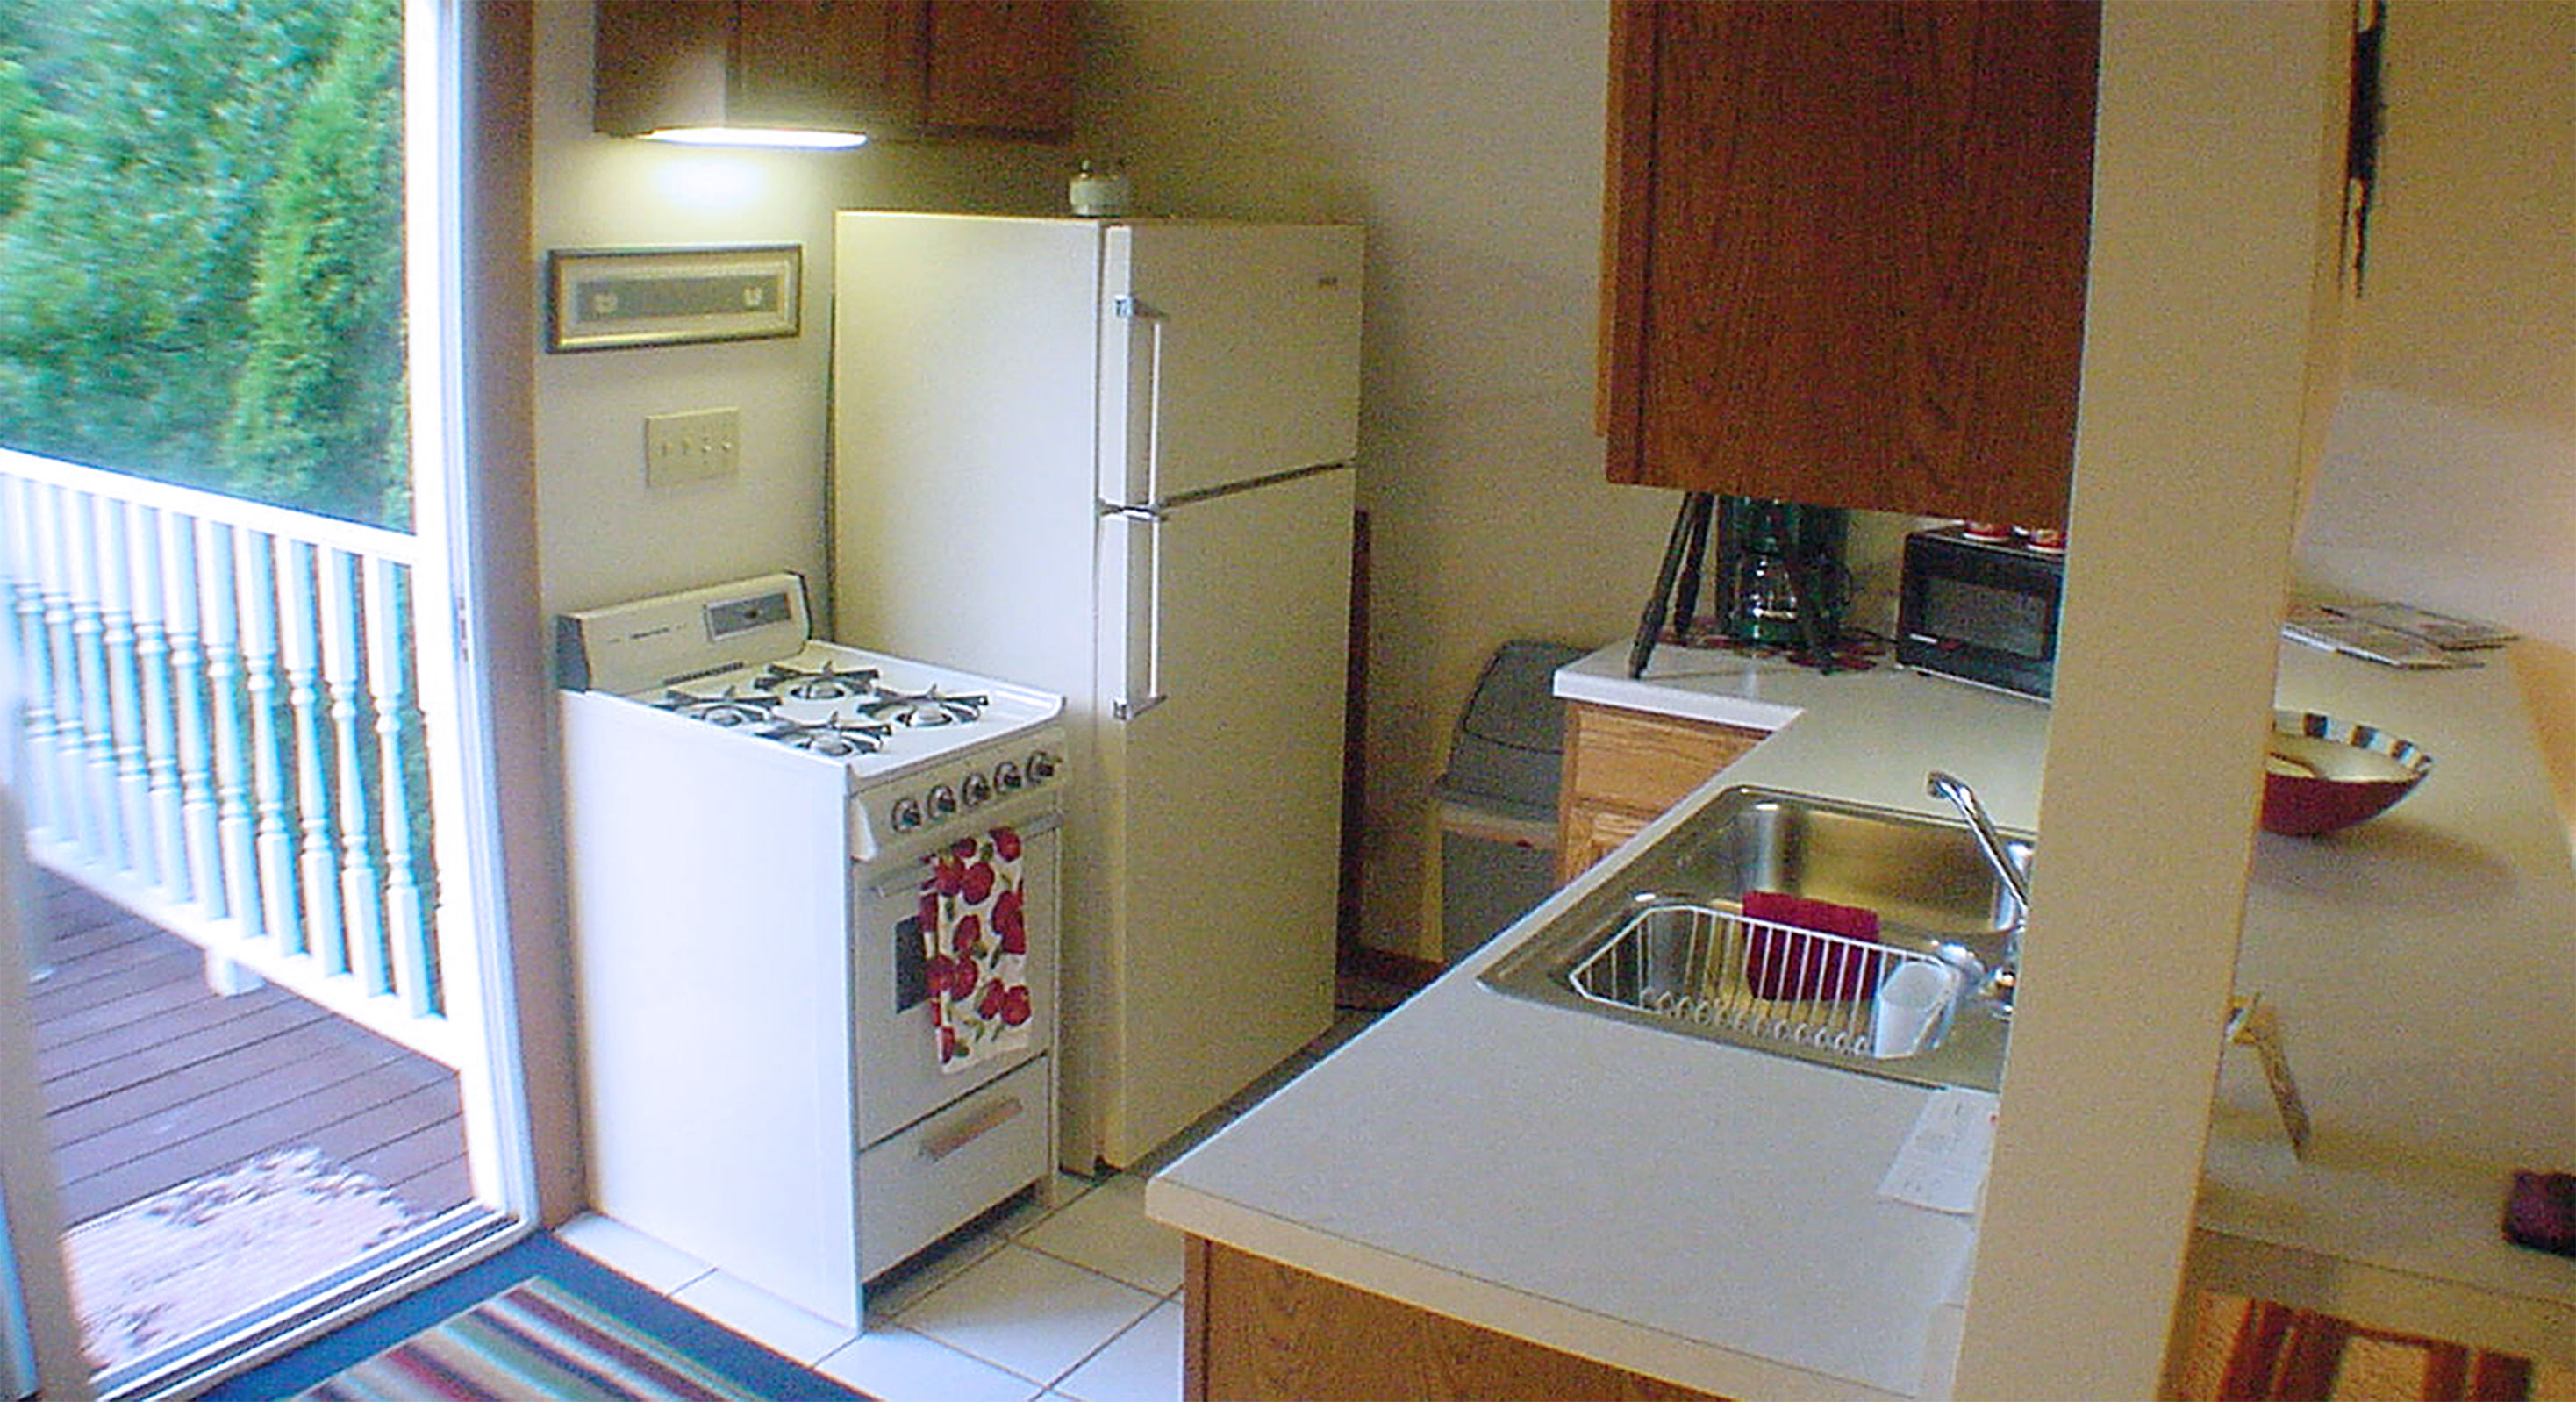 Kitchenette with fridge, stove, microwave, sink...